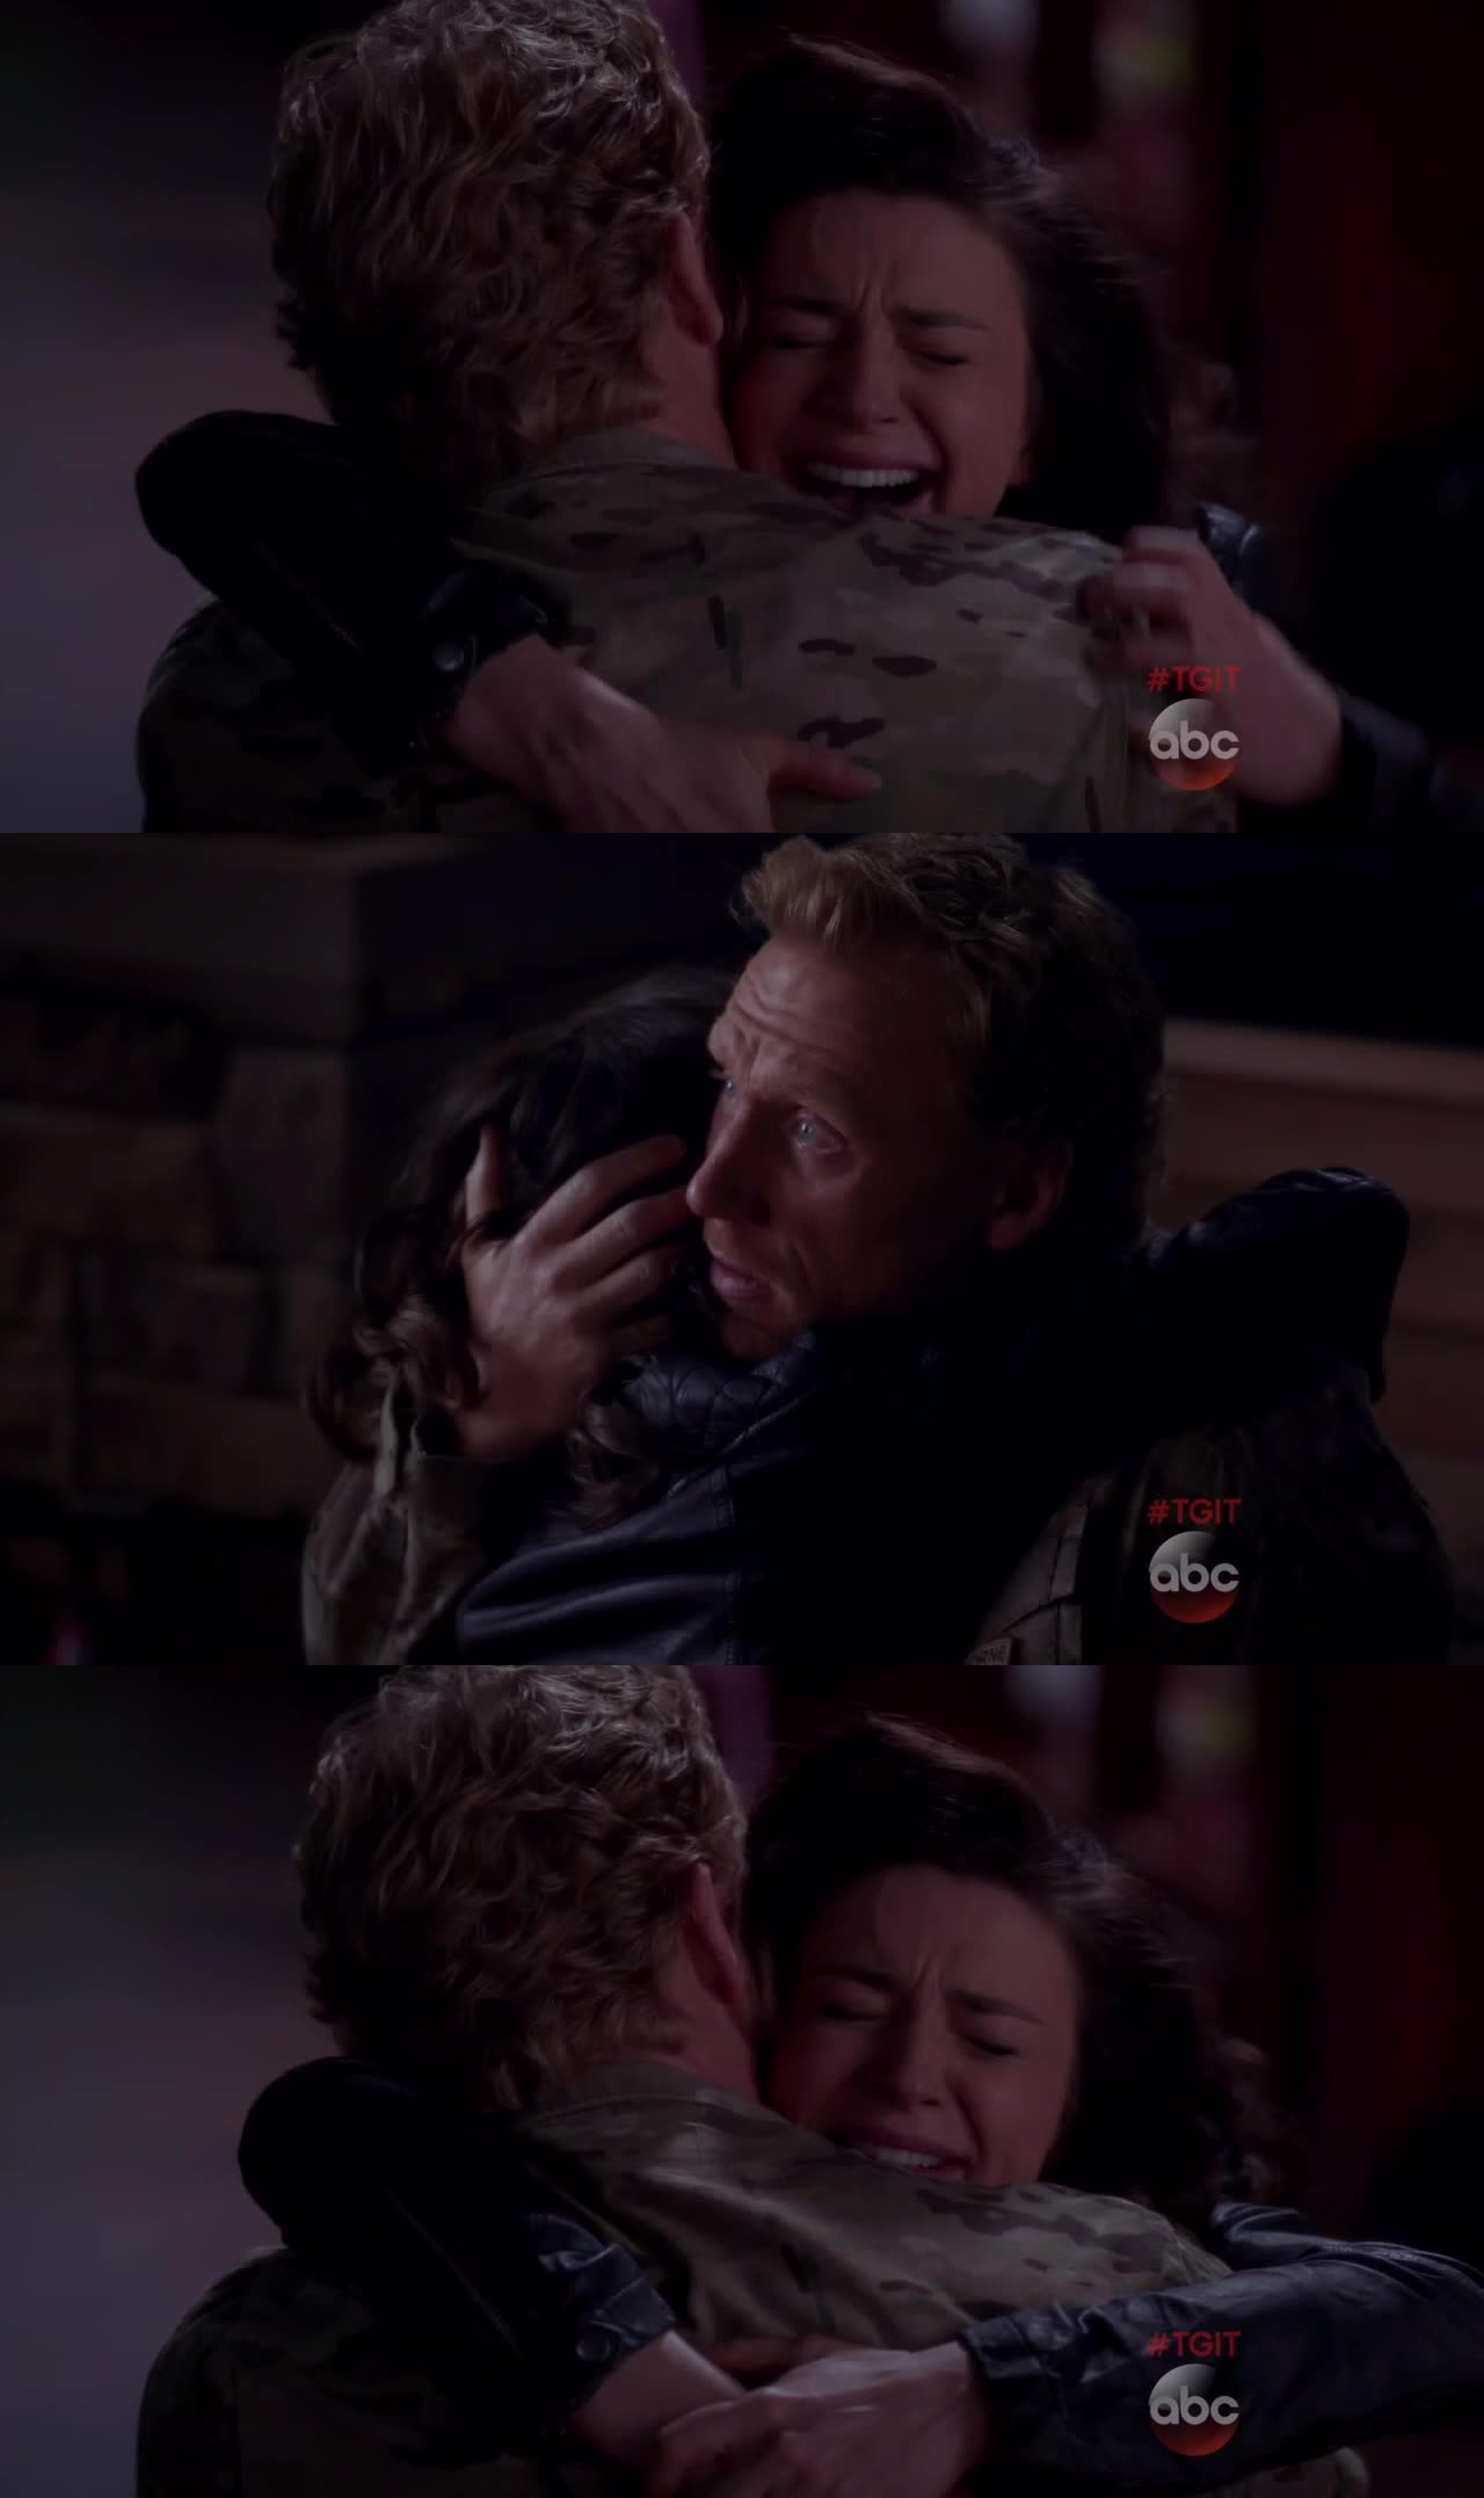 That what the most heartbreaking scene I've ever seen !